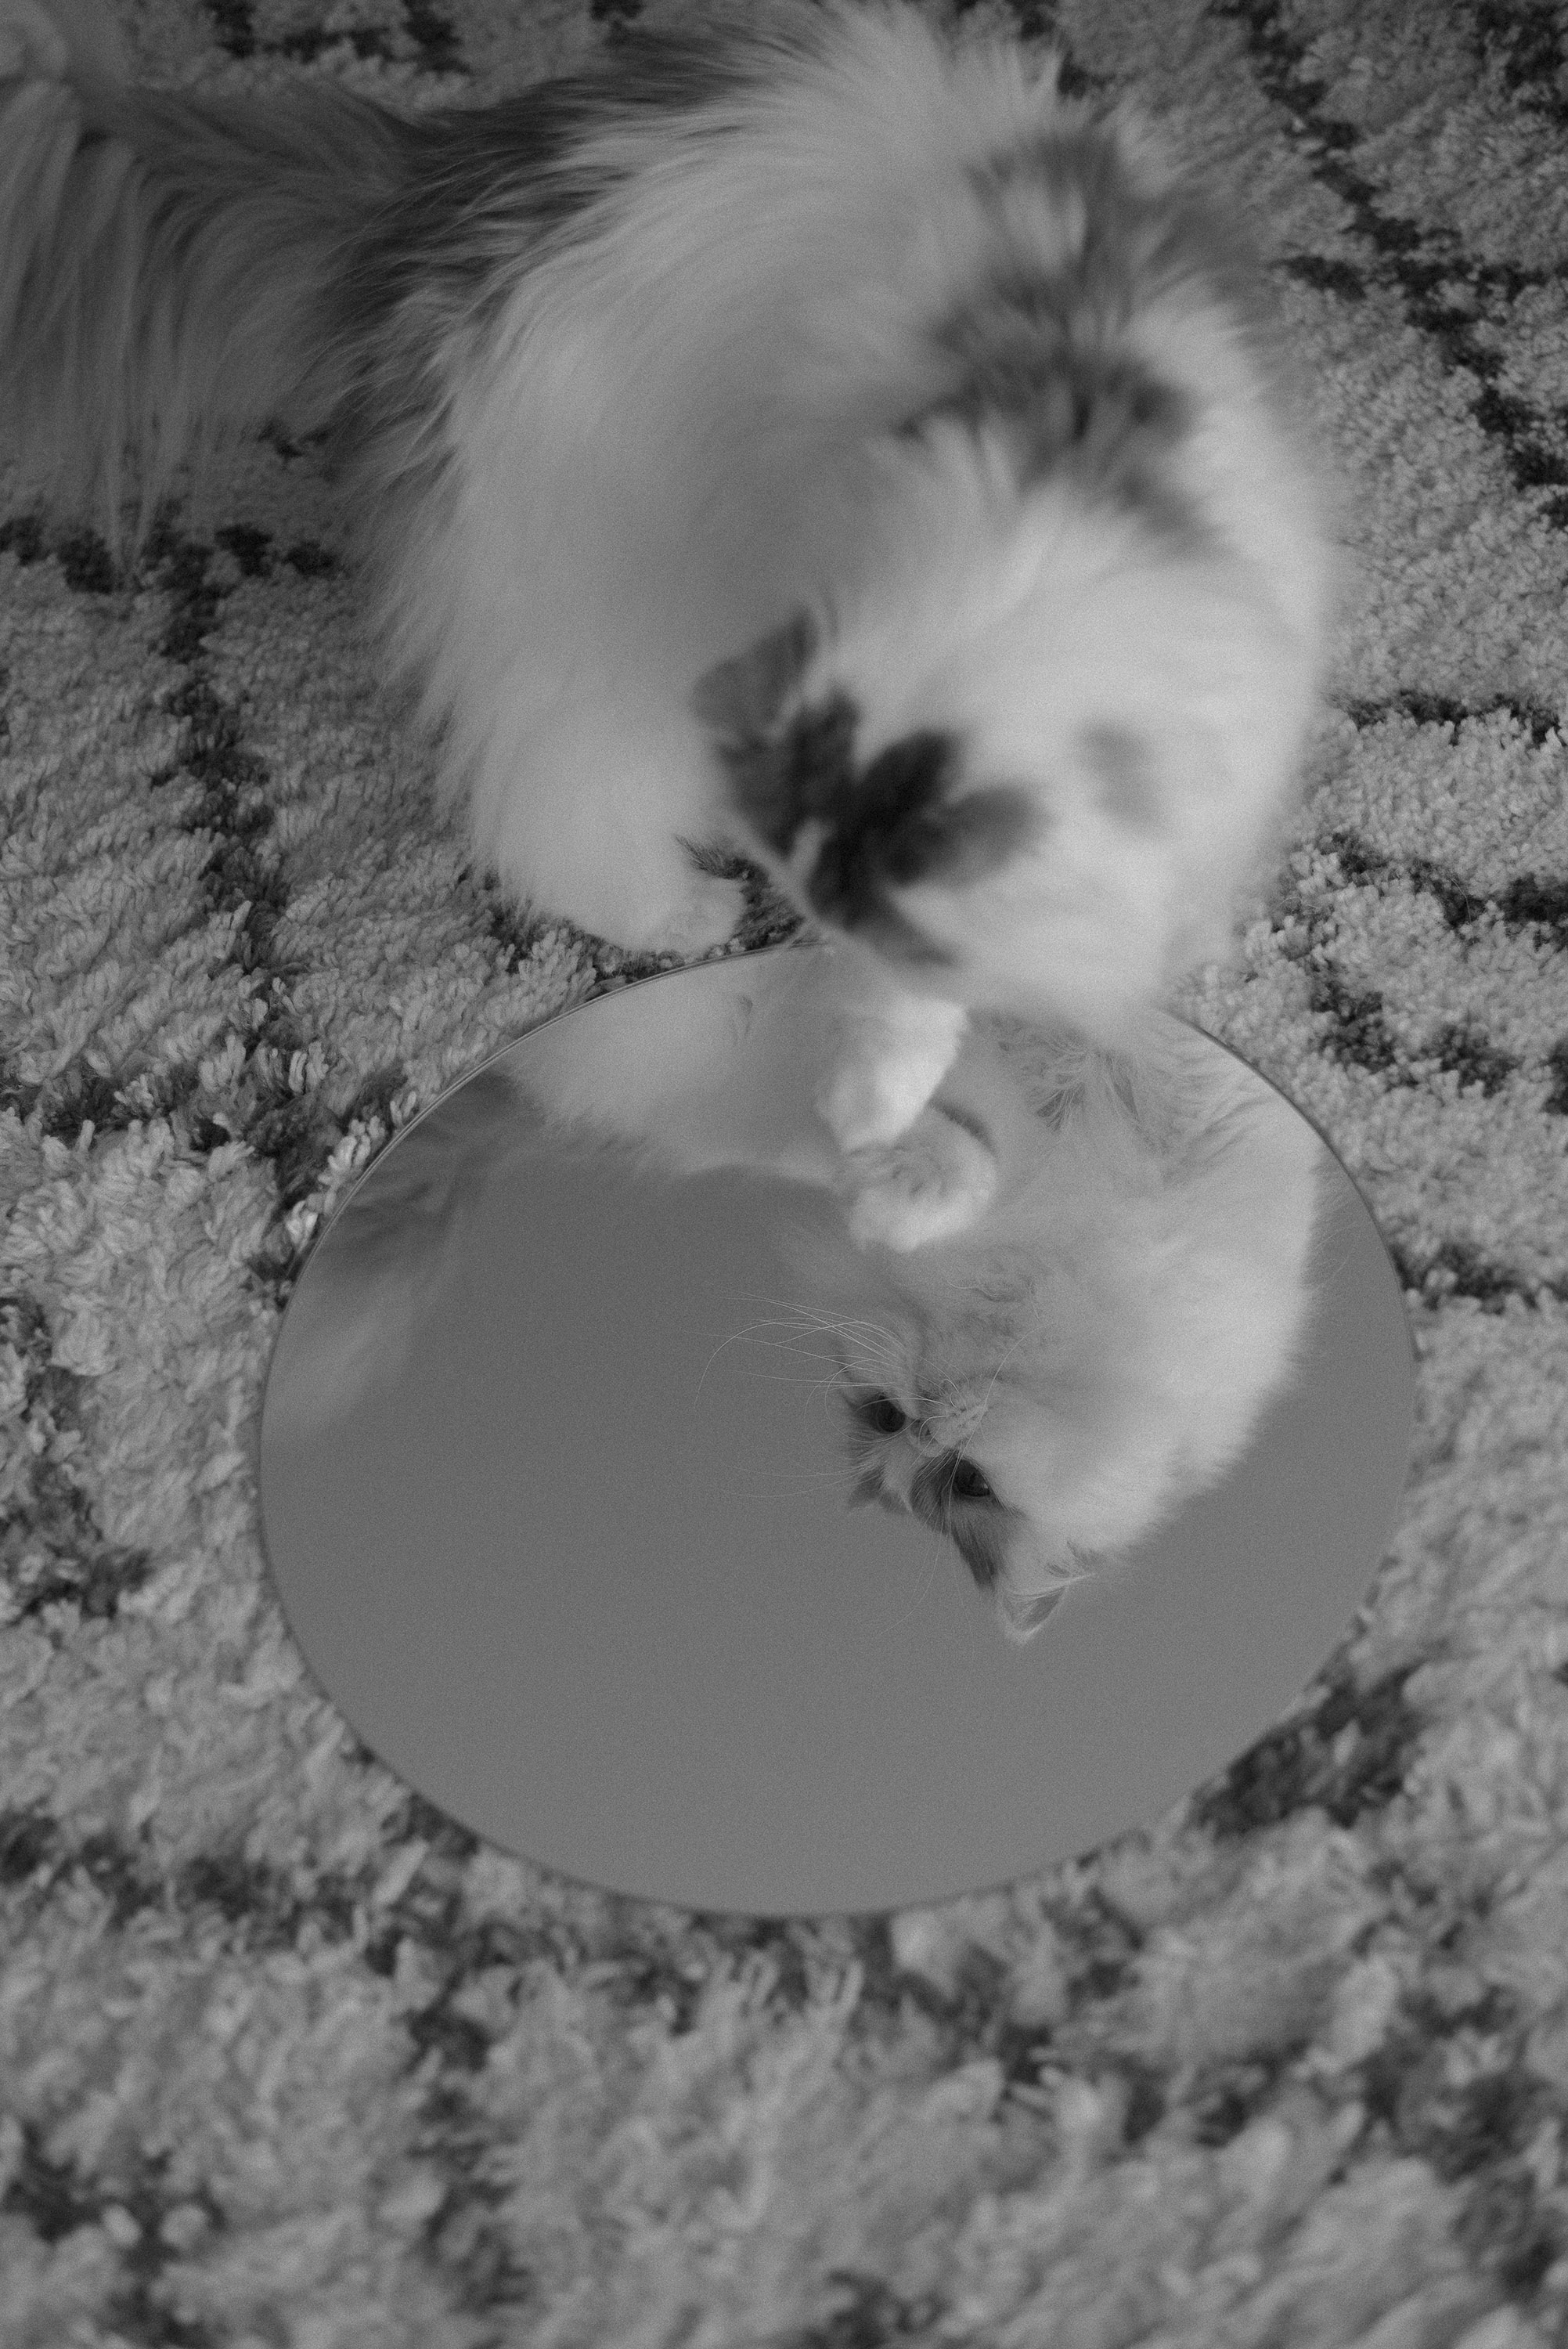 perception mirror conceptual photography cat black and white vintage